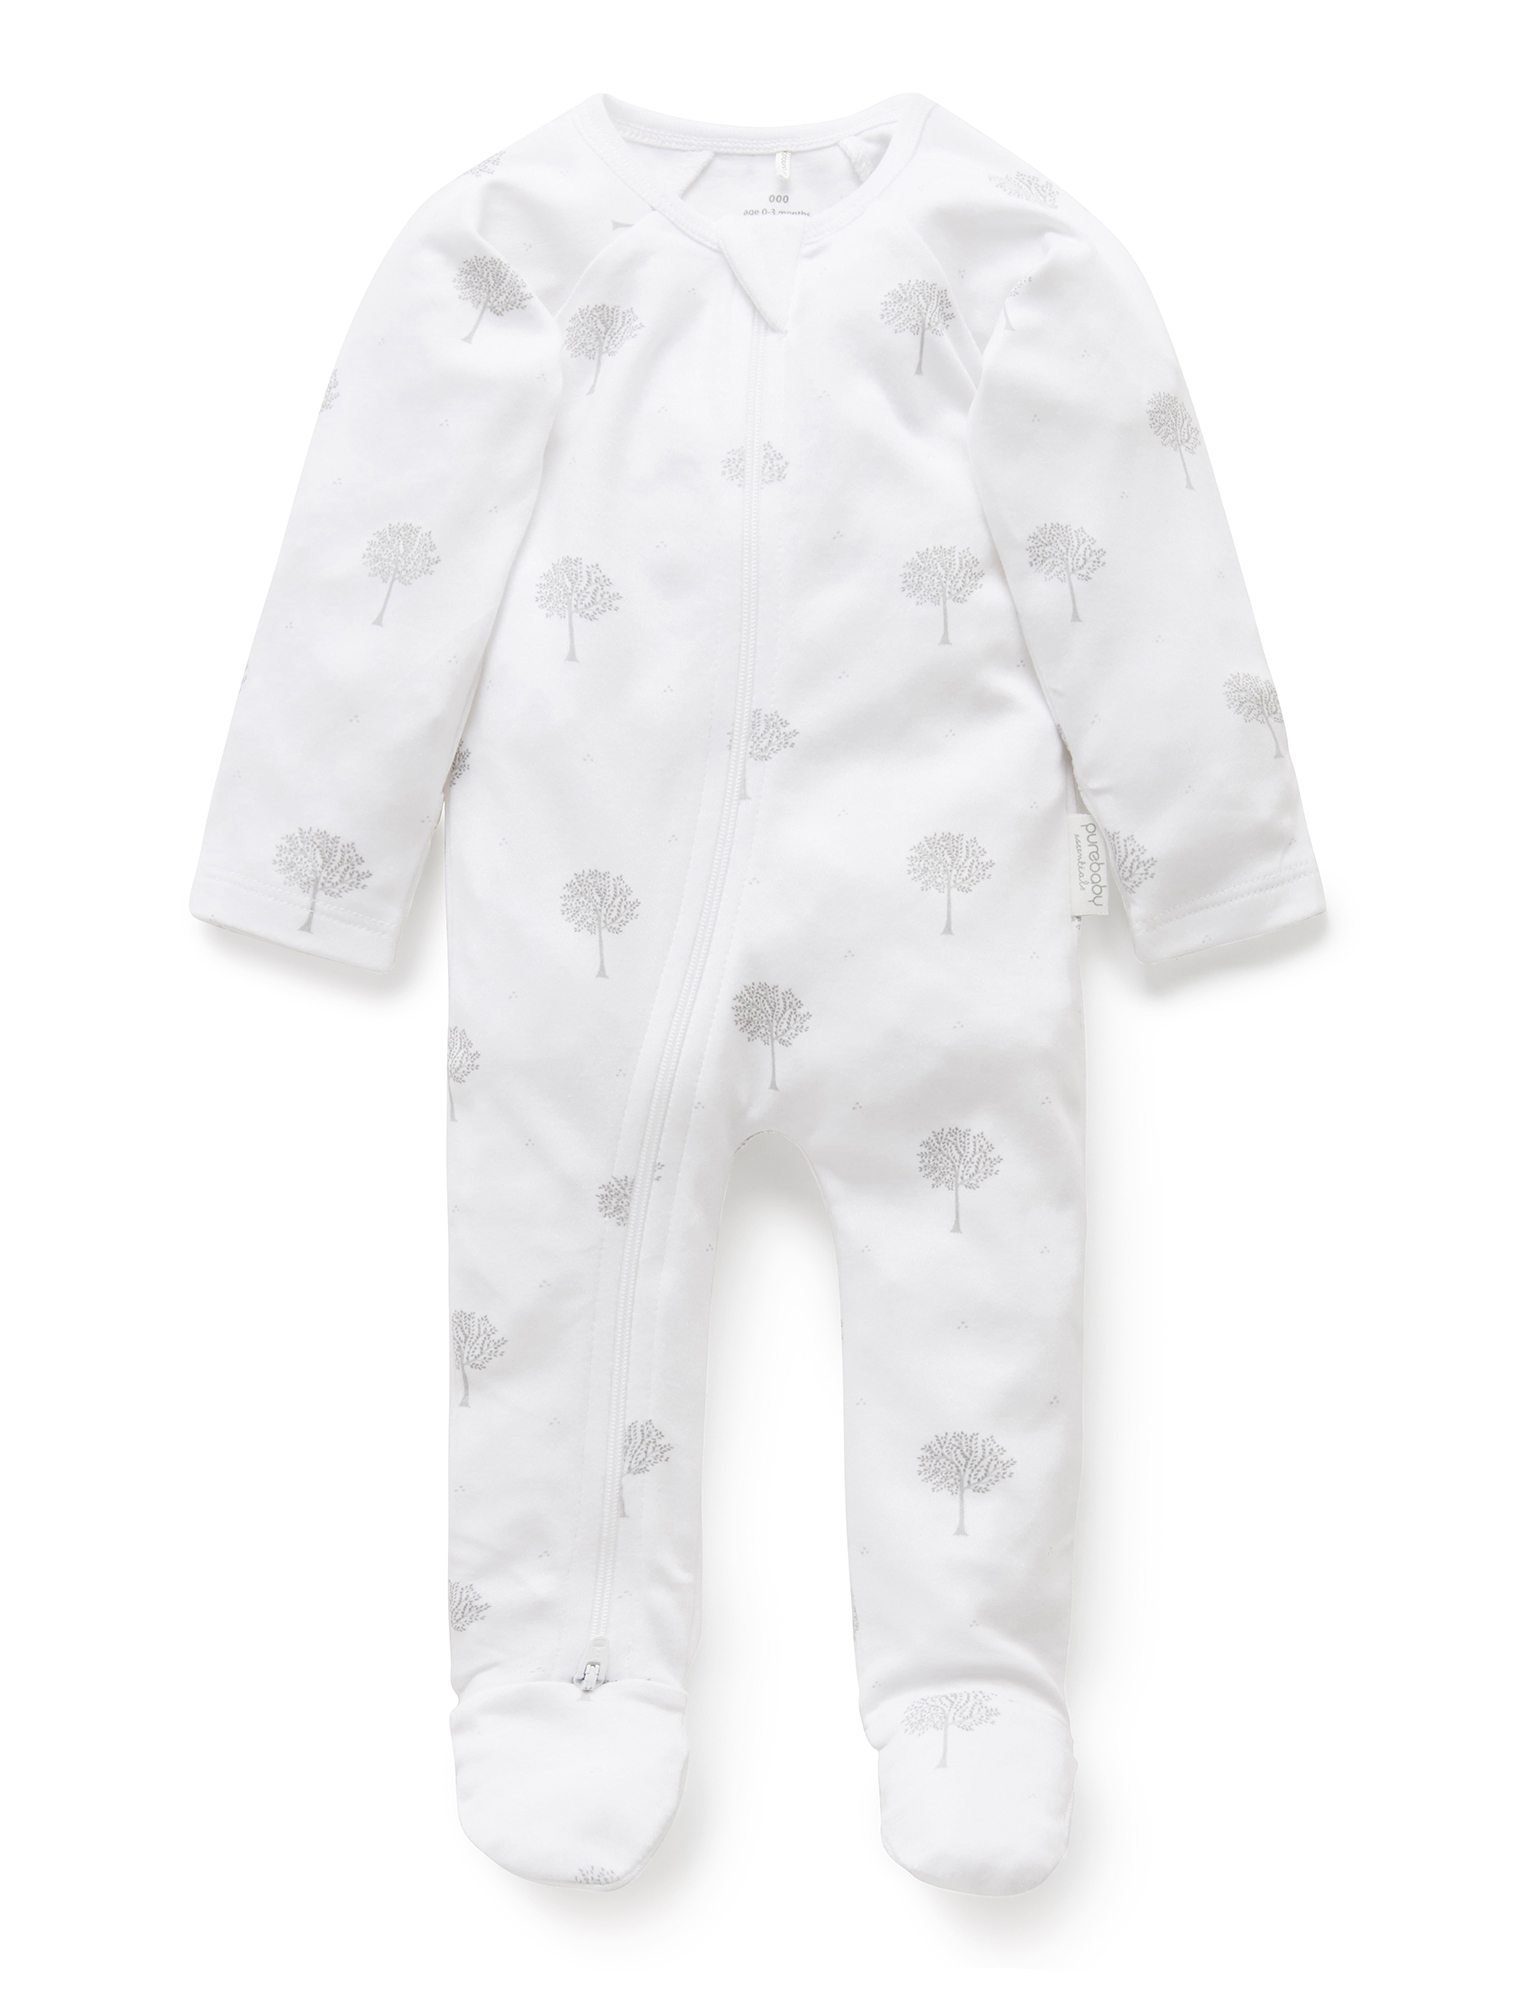 Purebaby Zip Babygro - Pale Grey Tree